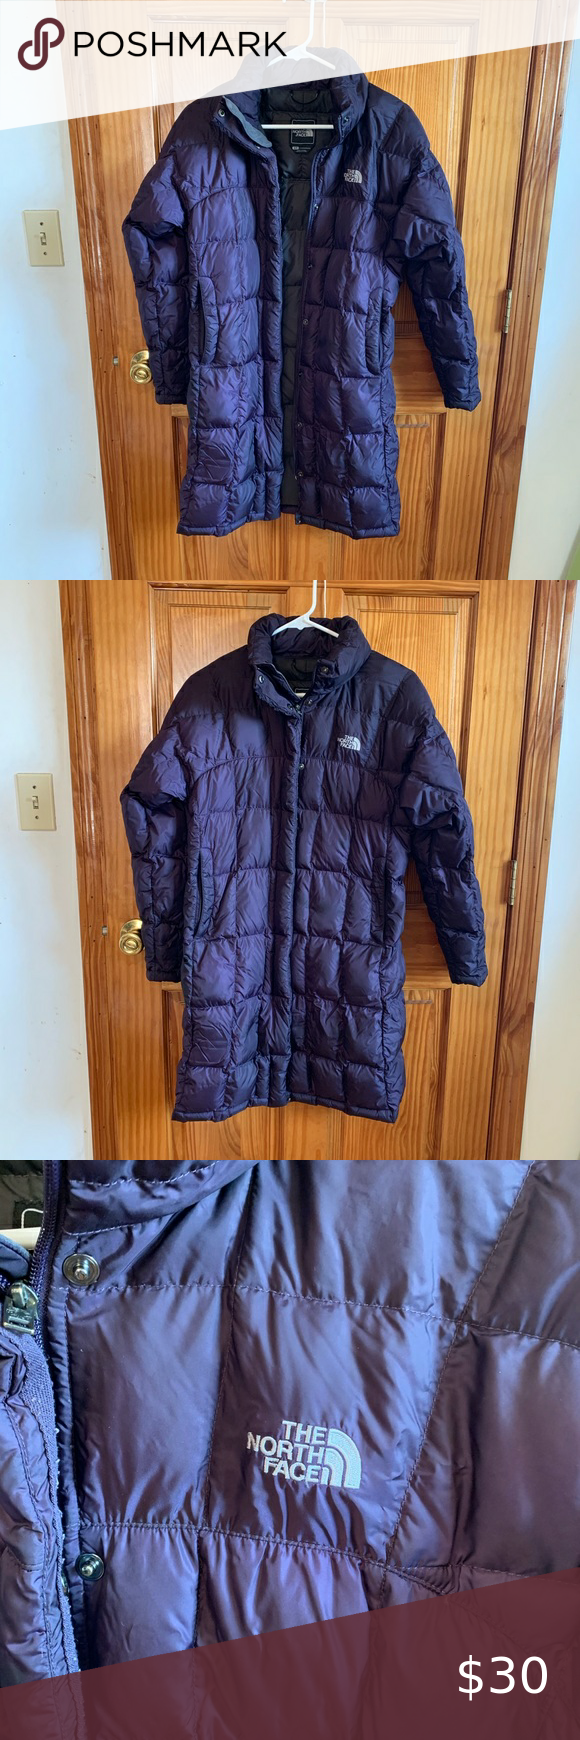 Women S Long North Face Jacket Long North Face Jacket North Face Jacket North Face Jacket Women S [ 1740 x 580 Pixel ]